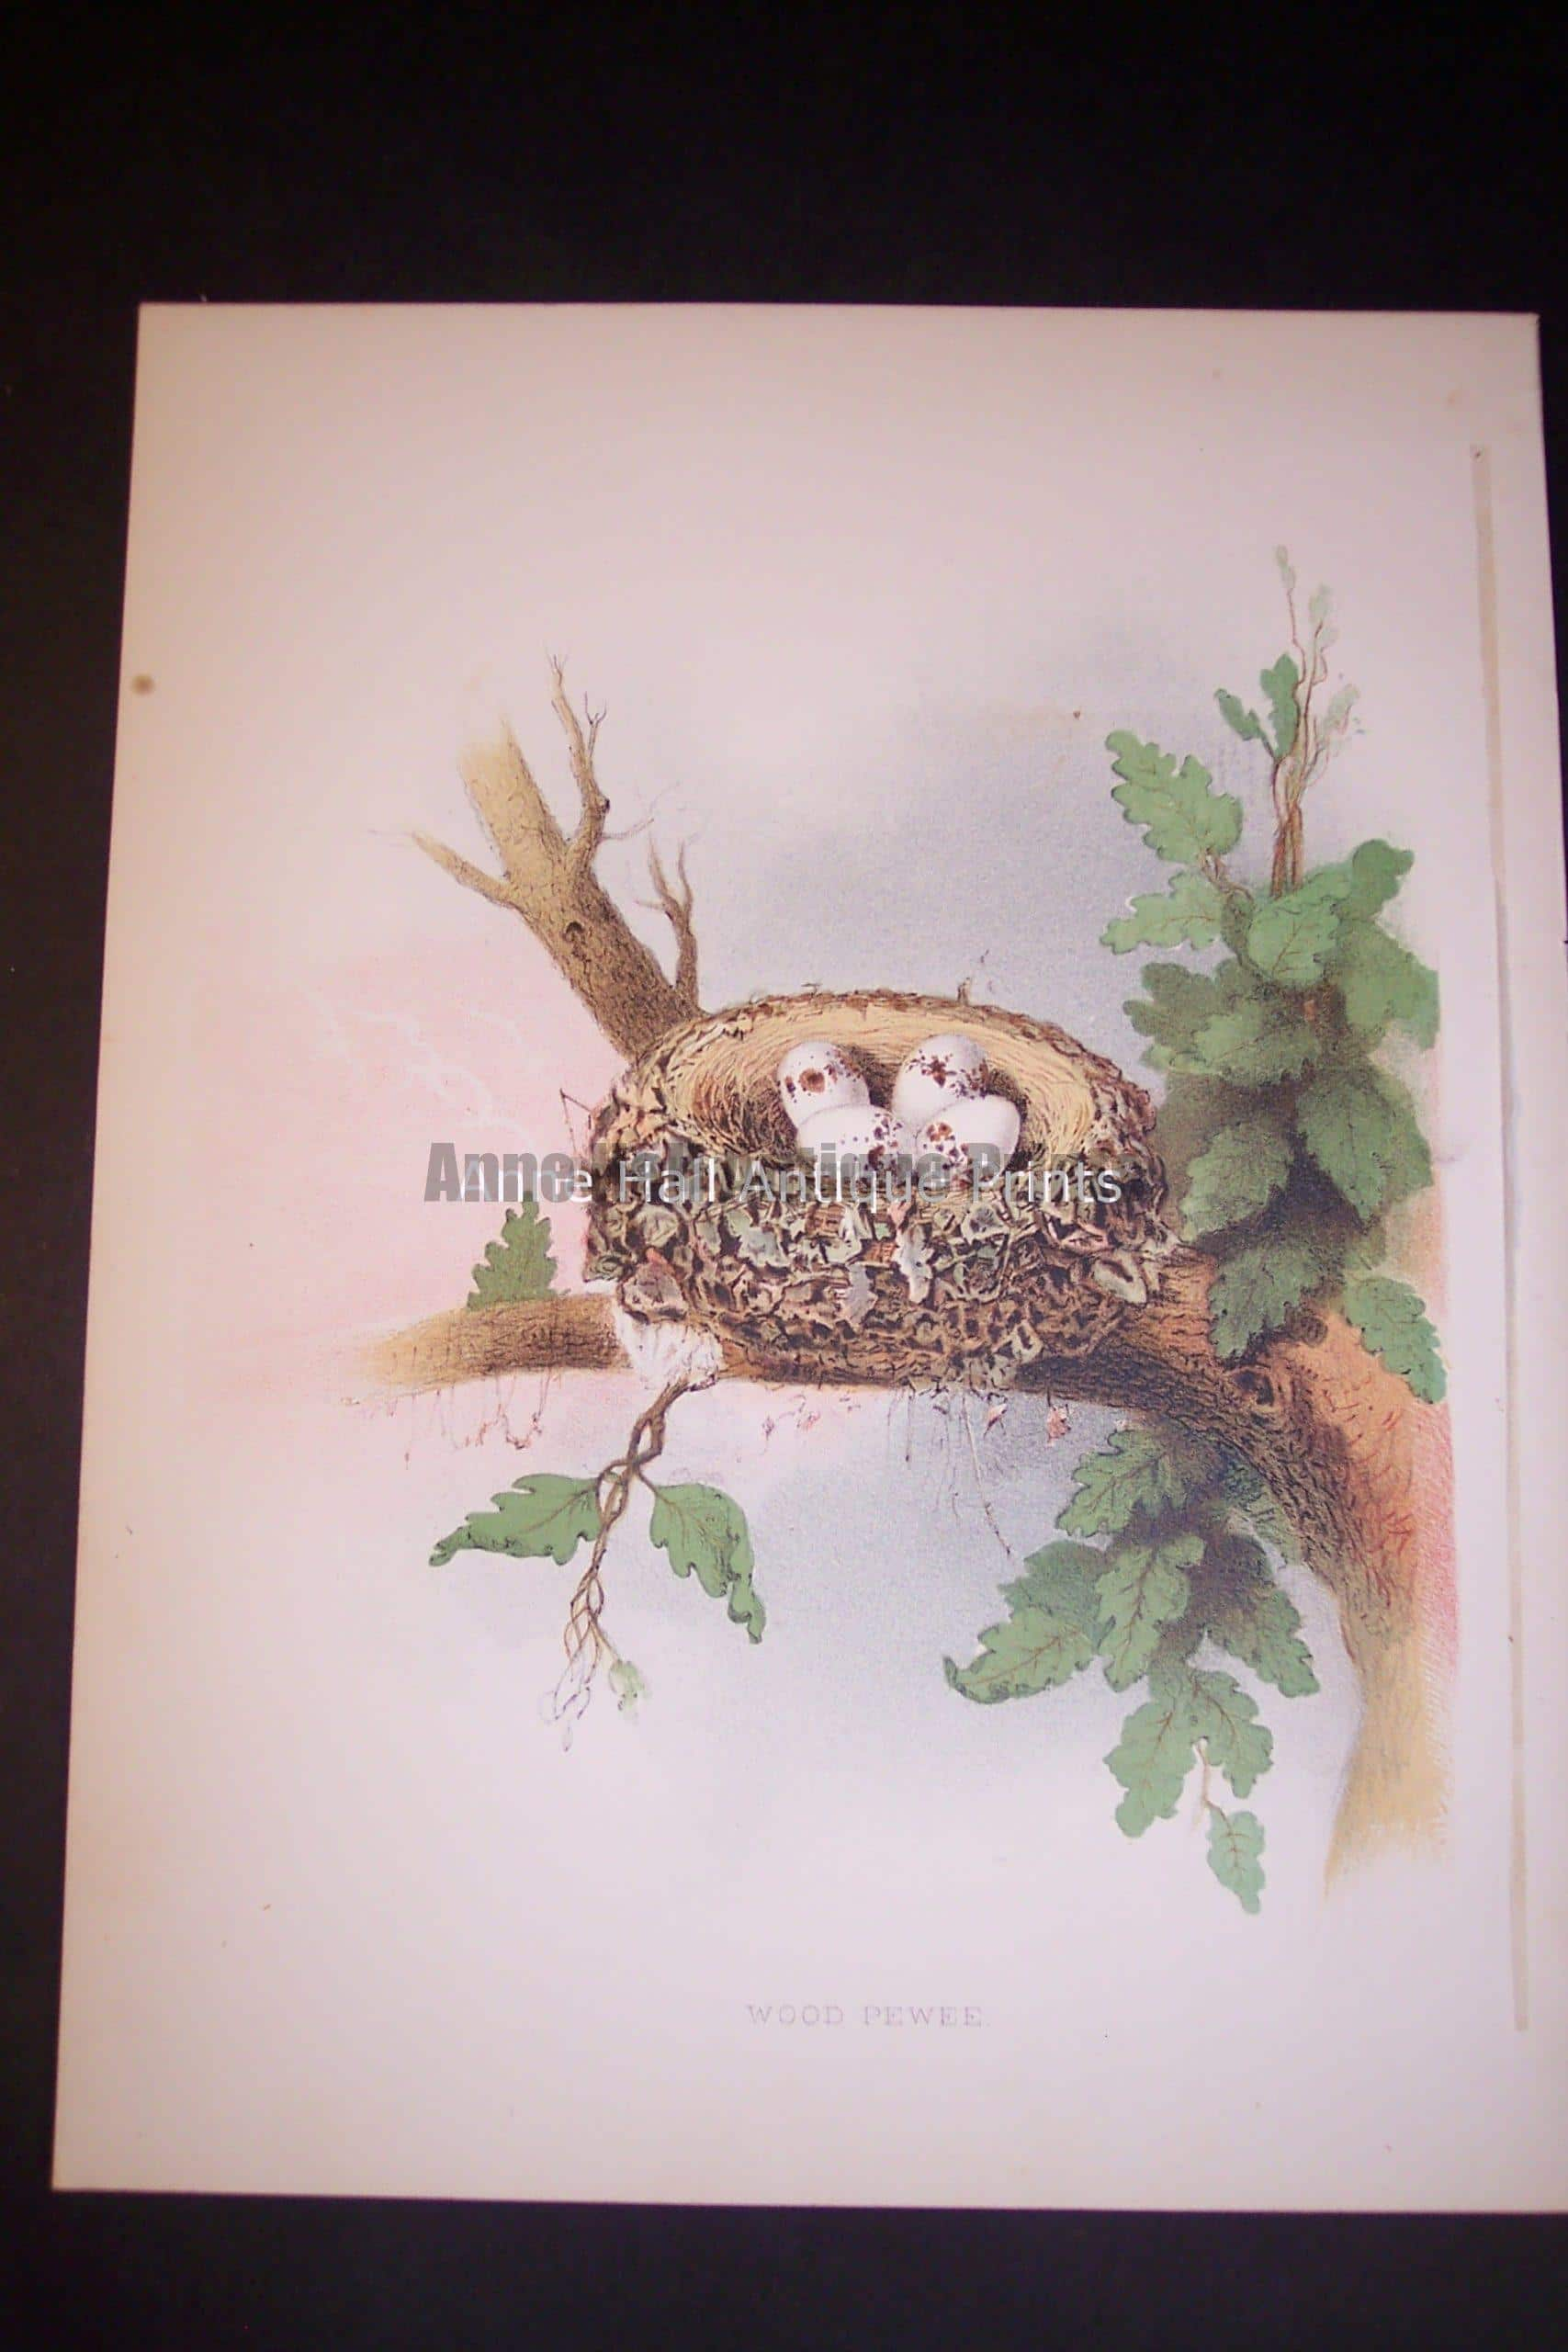 Thomas Gentry Bird Nest Chromolithograph from 1882. Wood Peewee. 0224 125.